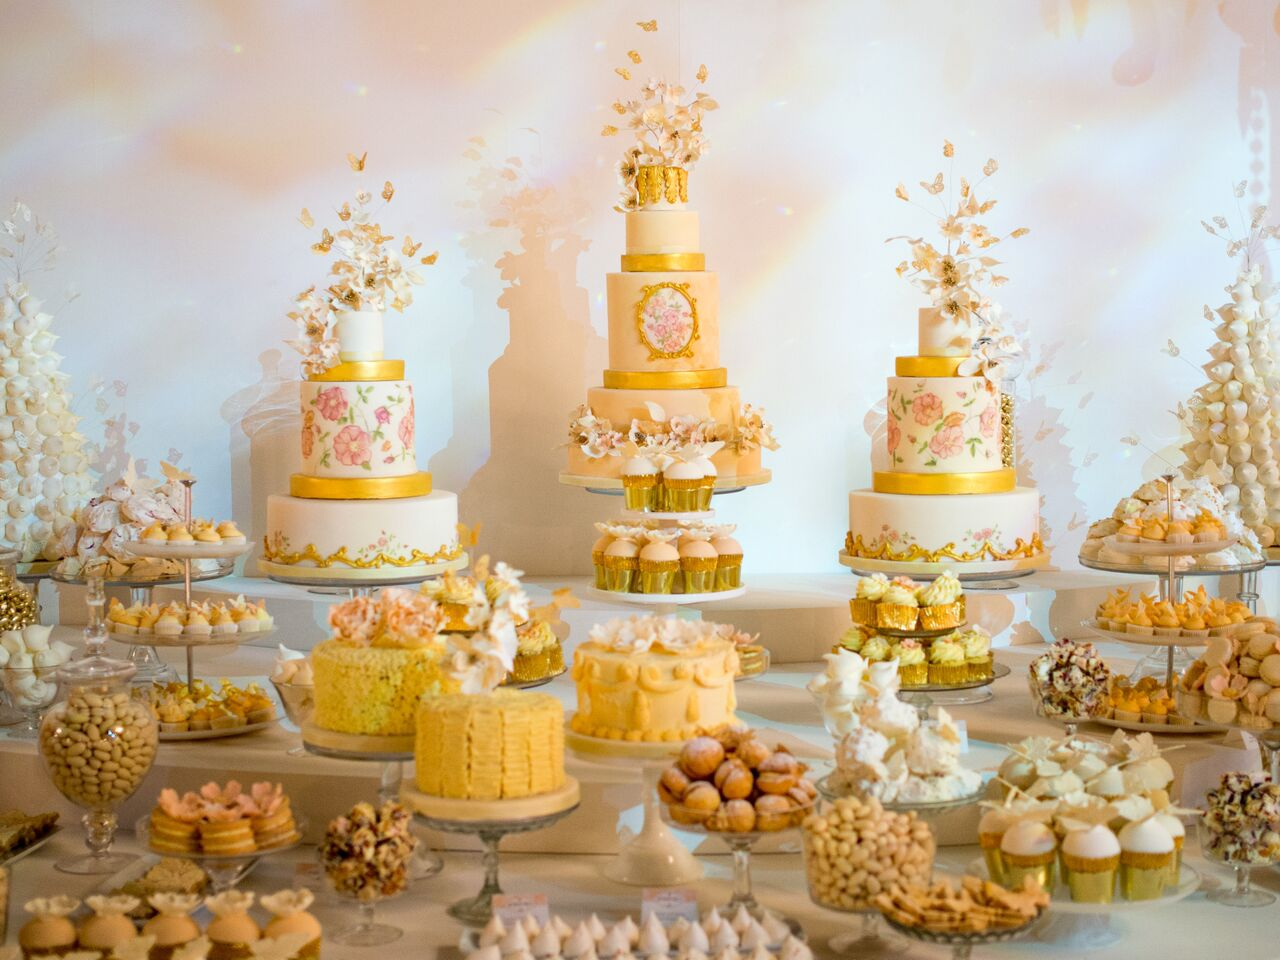 rosalind-miller-dessert-table7